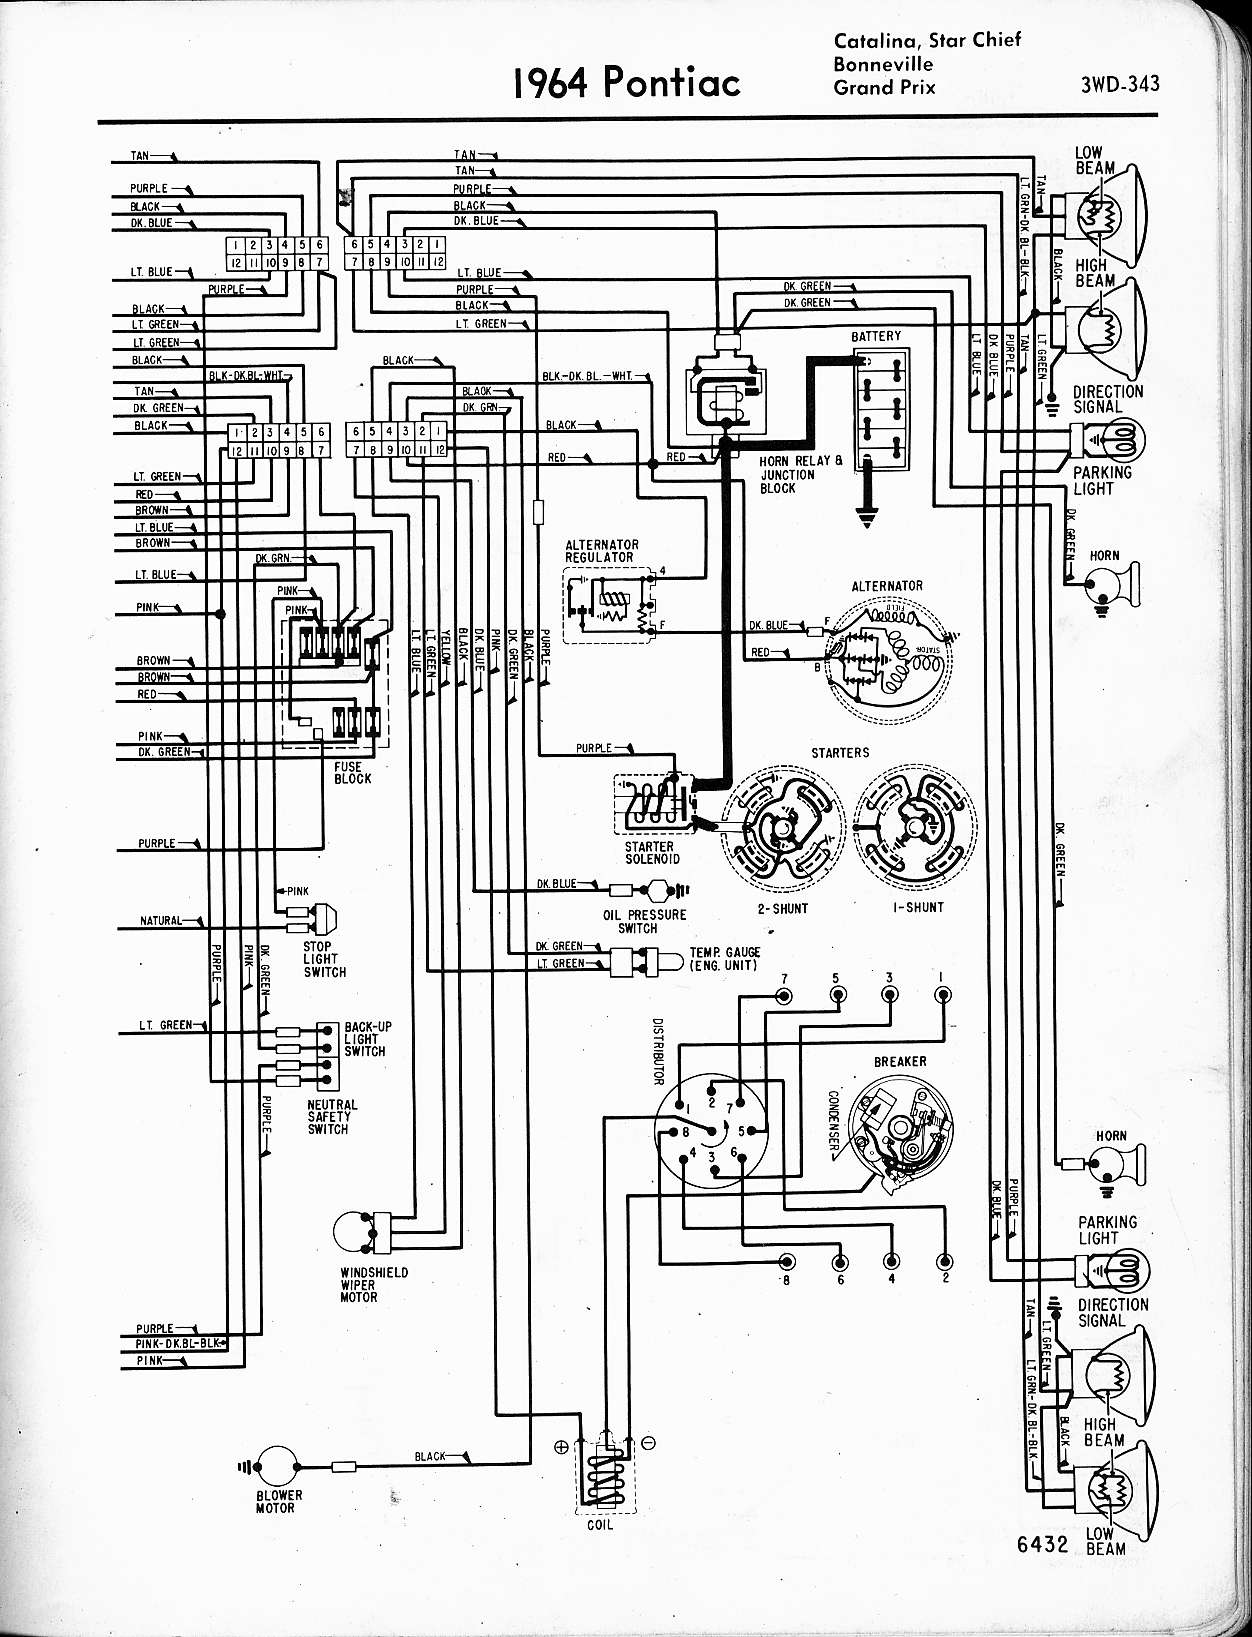 1971 Pontiac Gto Wiring Diagram Worksheet And 1972 Tr6 Schematic 1969 Electrical Schematics Rh Culturetearoom Com Art